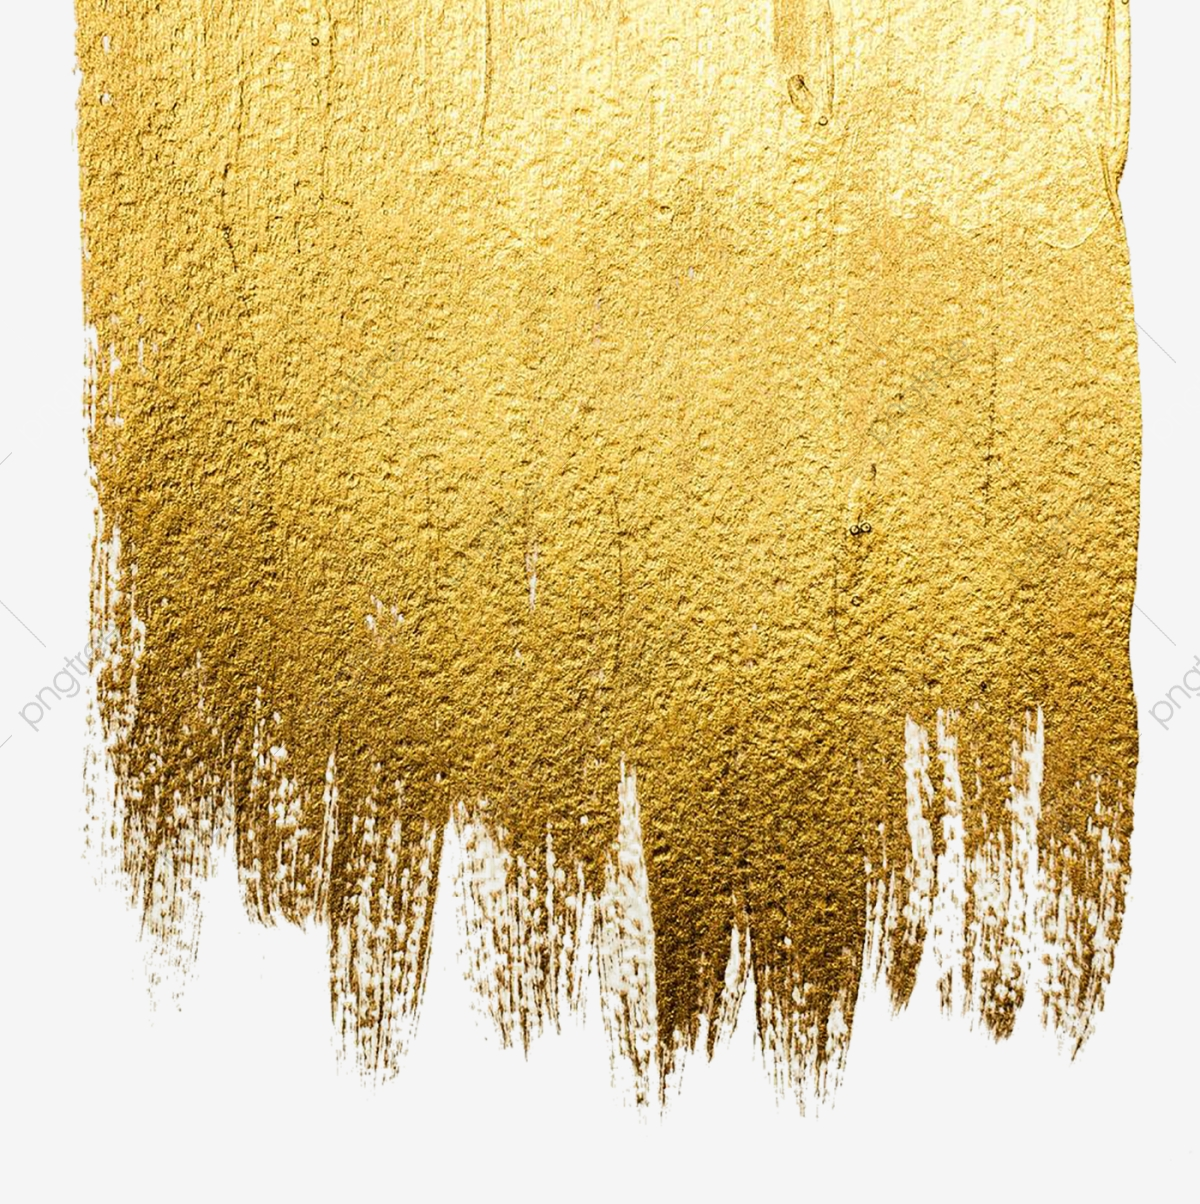 Gold Wall Paint, Wall, Break, Effect PNG Transparent Clipart Image.